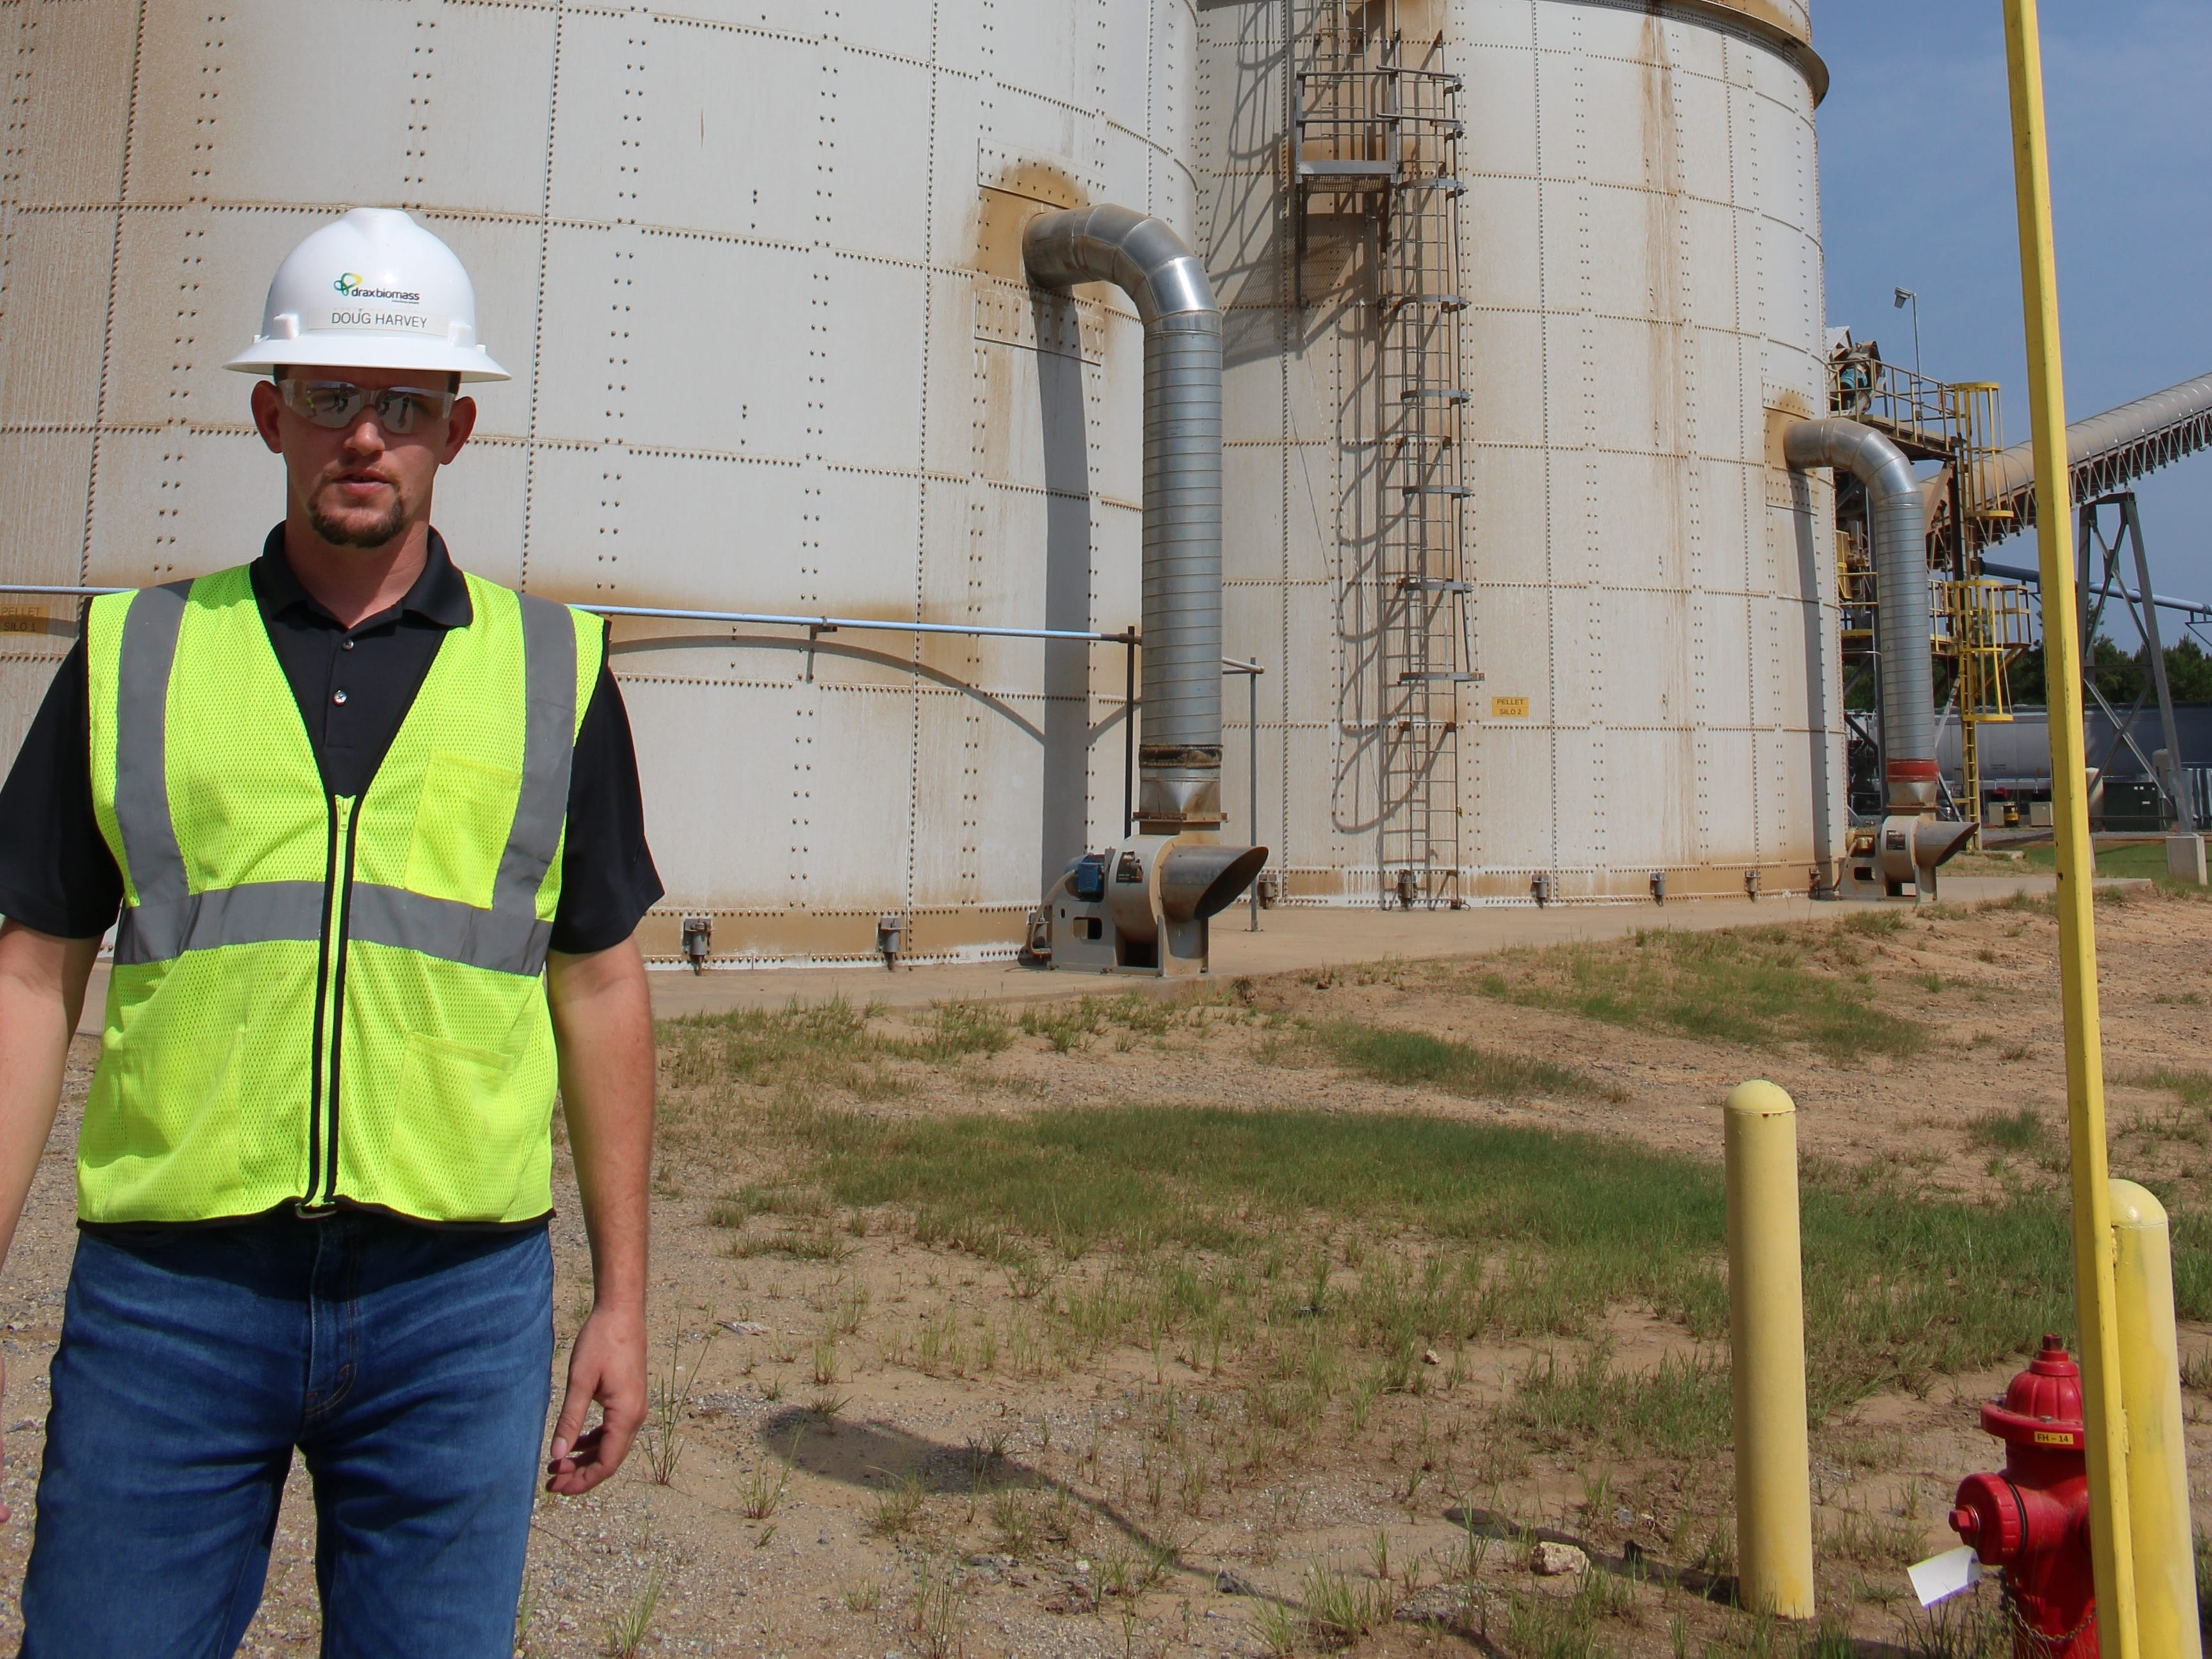 Morehouse Bioenergy Plant Manager Doug Harvey said each of two silos at the facility hold slightly less than a day's production.